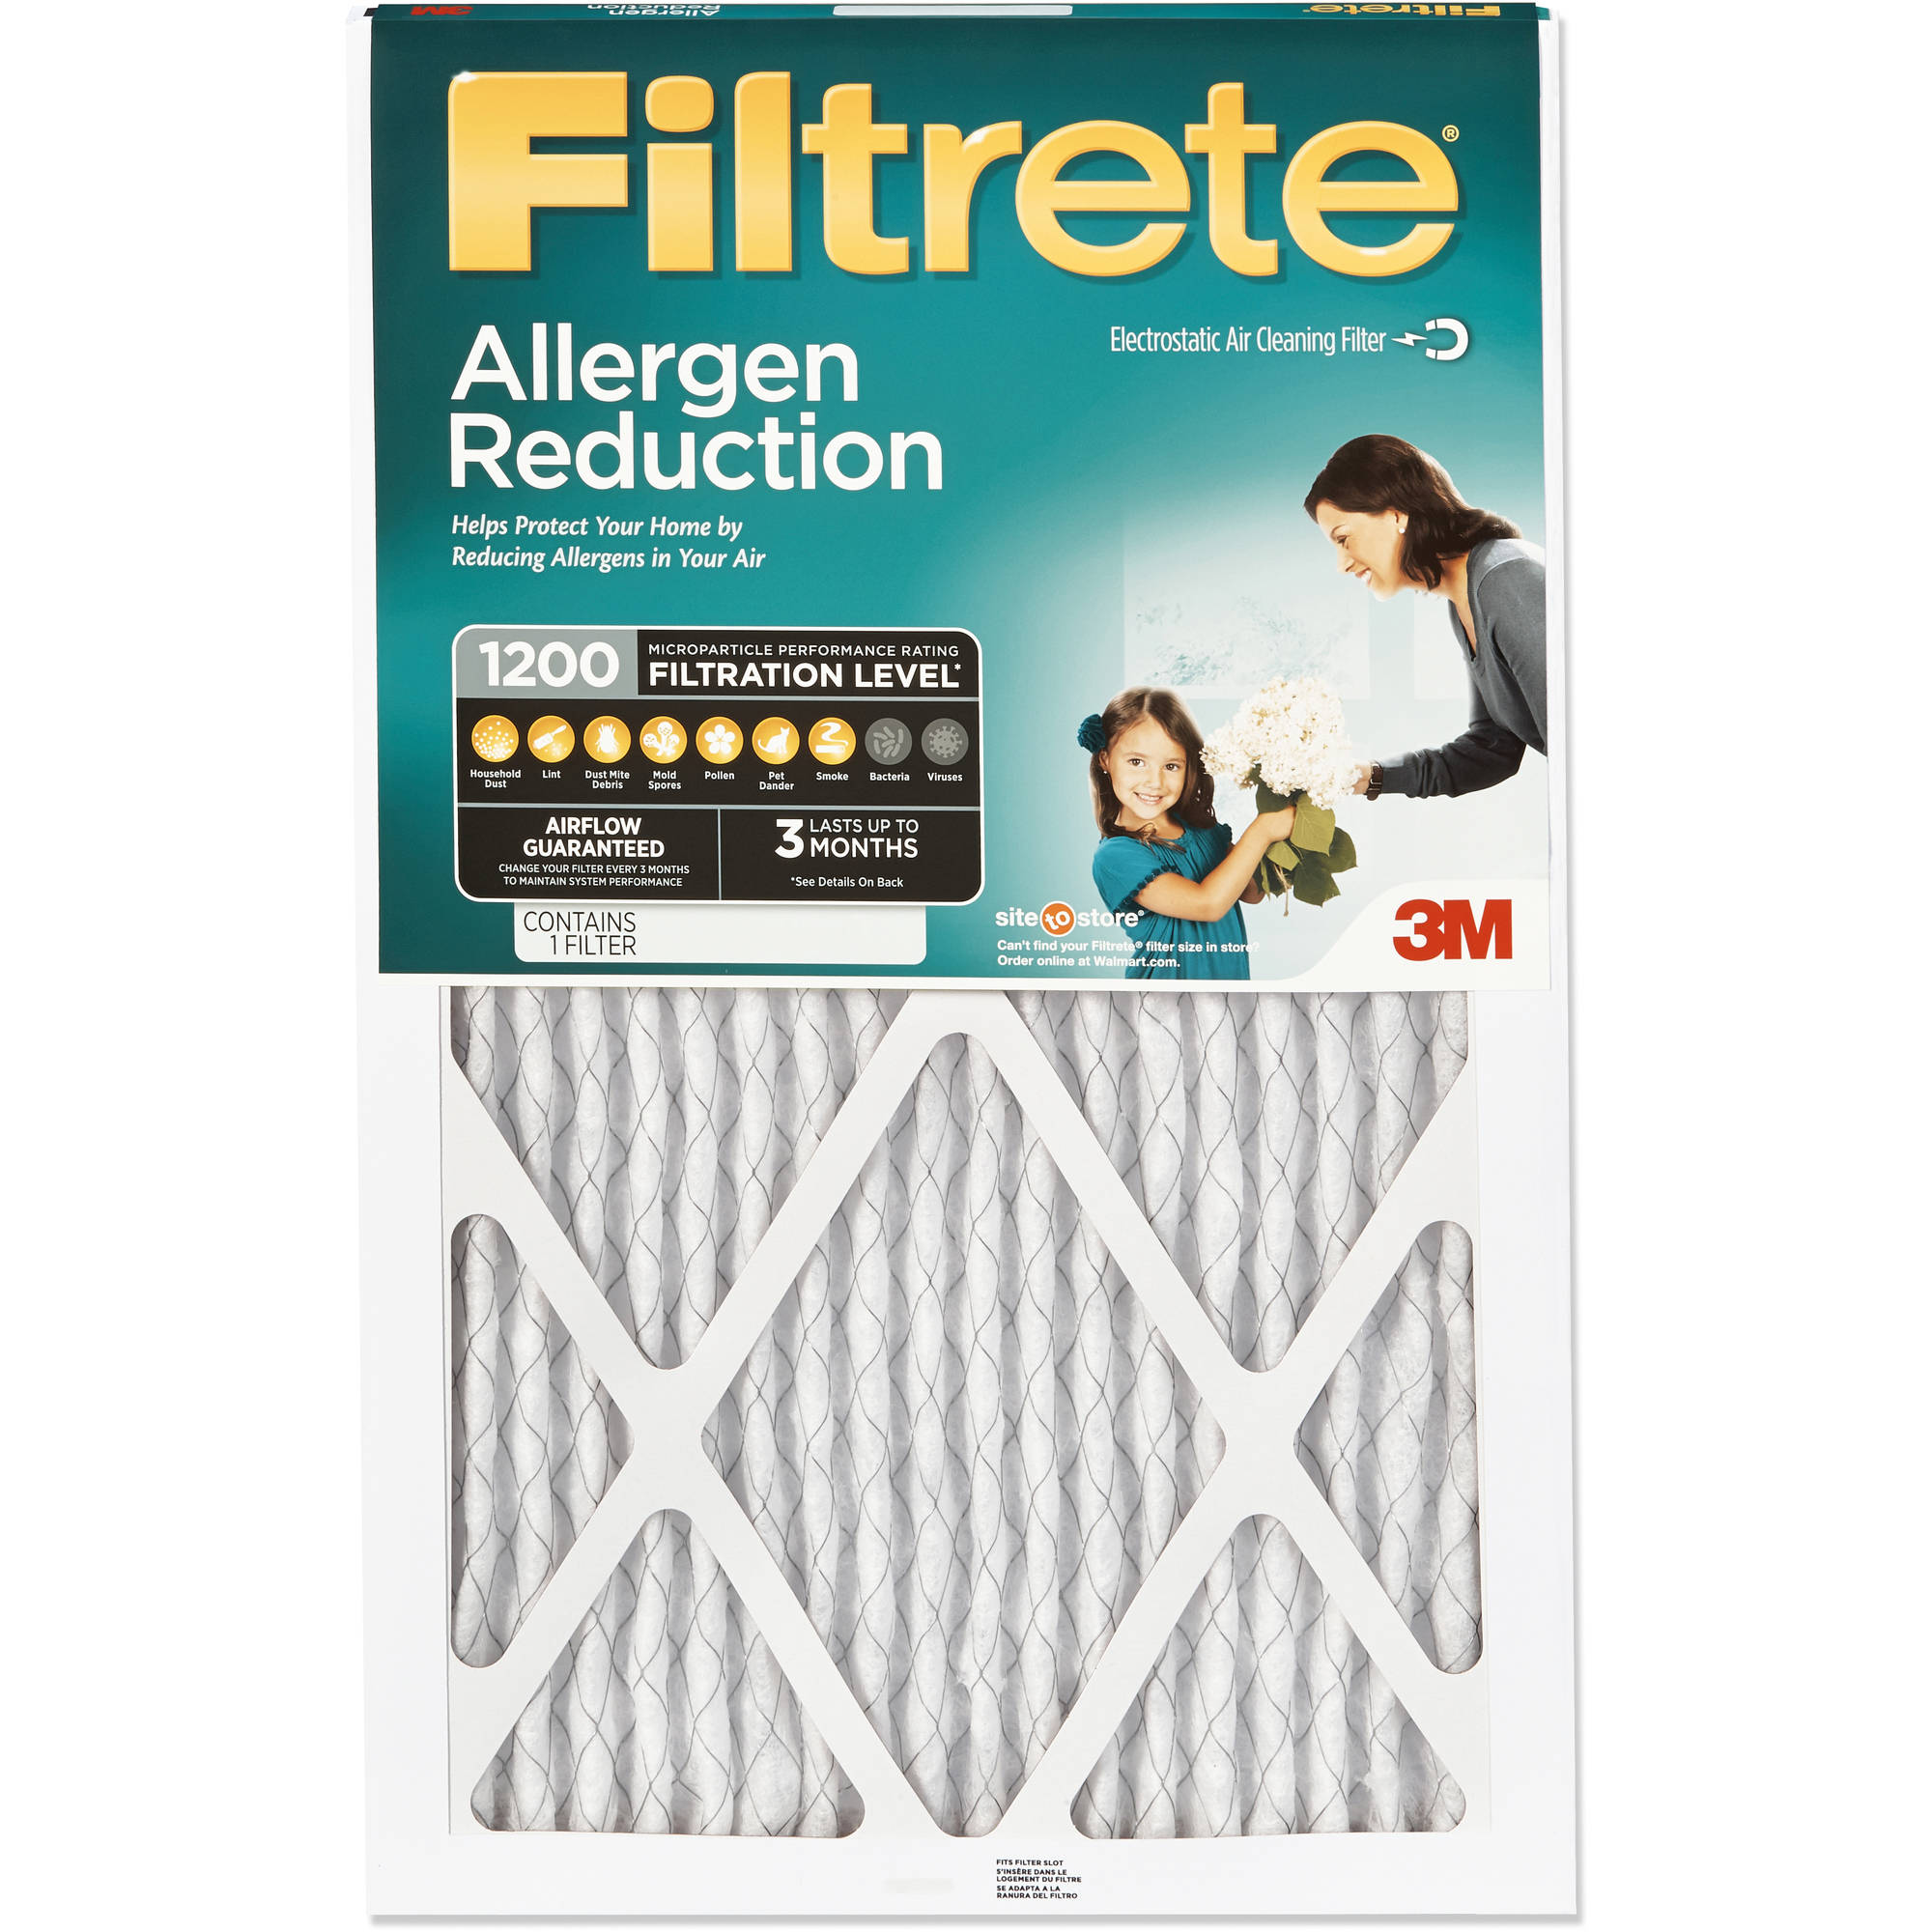 Filtrete Allergen Reduction HVAC Furnace Air Filter, 1200 MPR, 16 x 20 x 1, 1 Filter